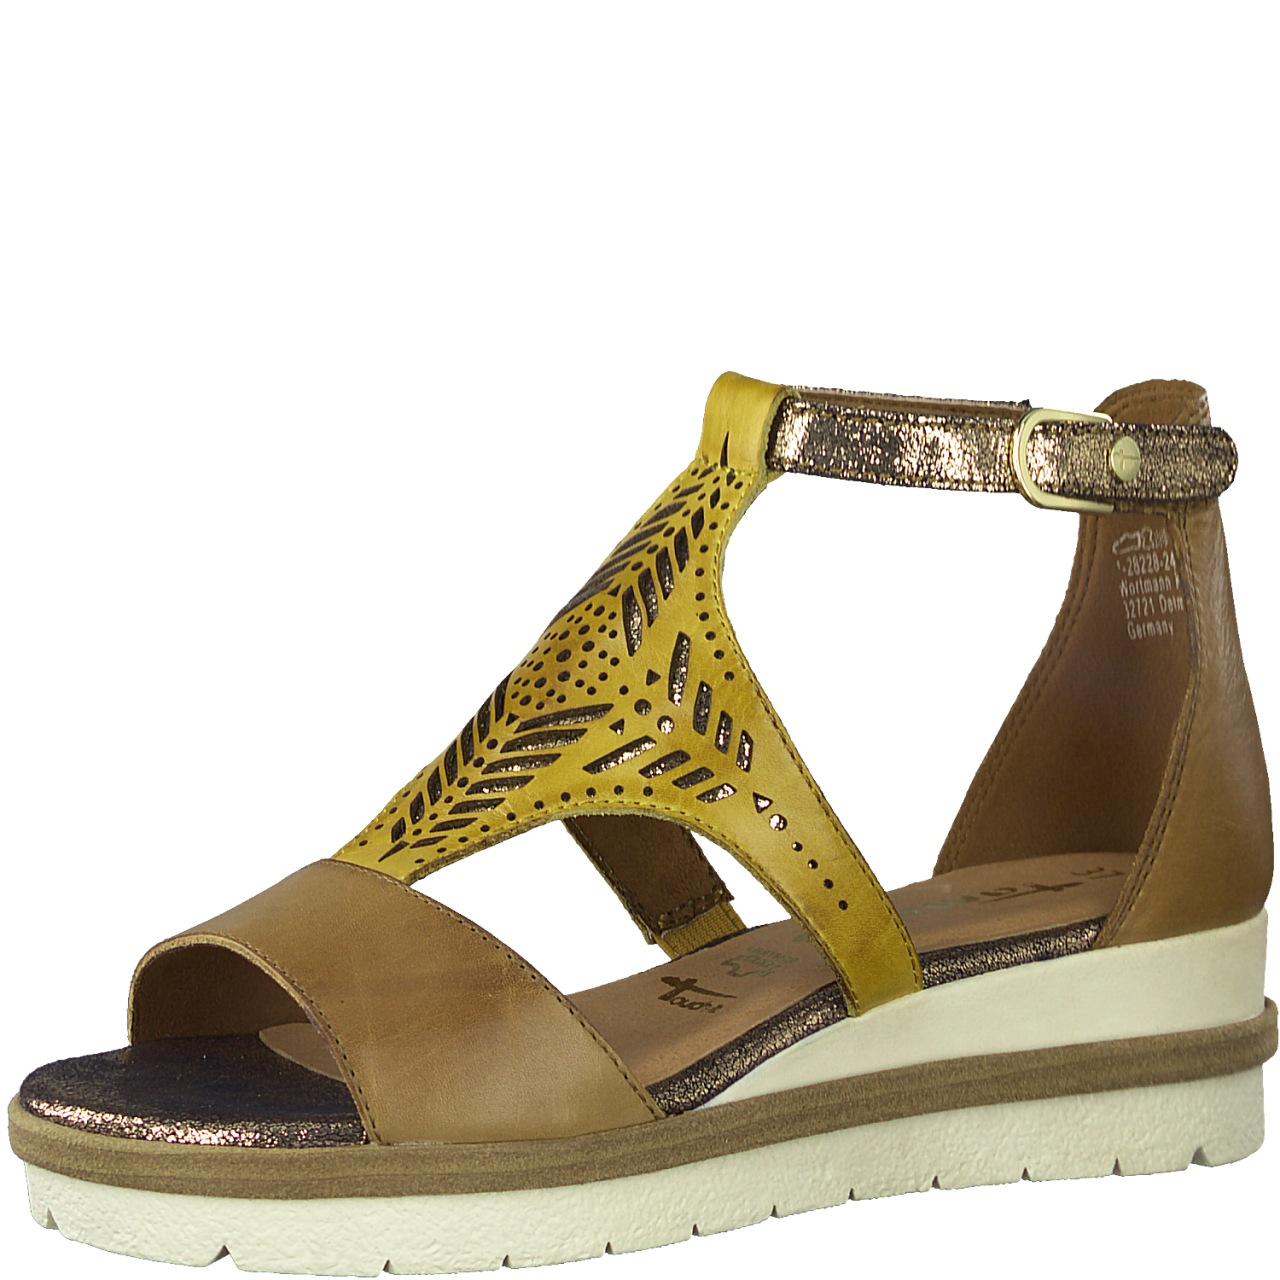 Berwick upon Tweed-Lime Shoe Co-Tamaris-Sandal-Yellow-Tan-Wedge-Velcro-summer